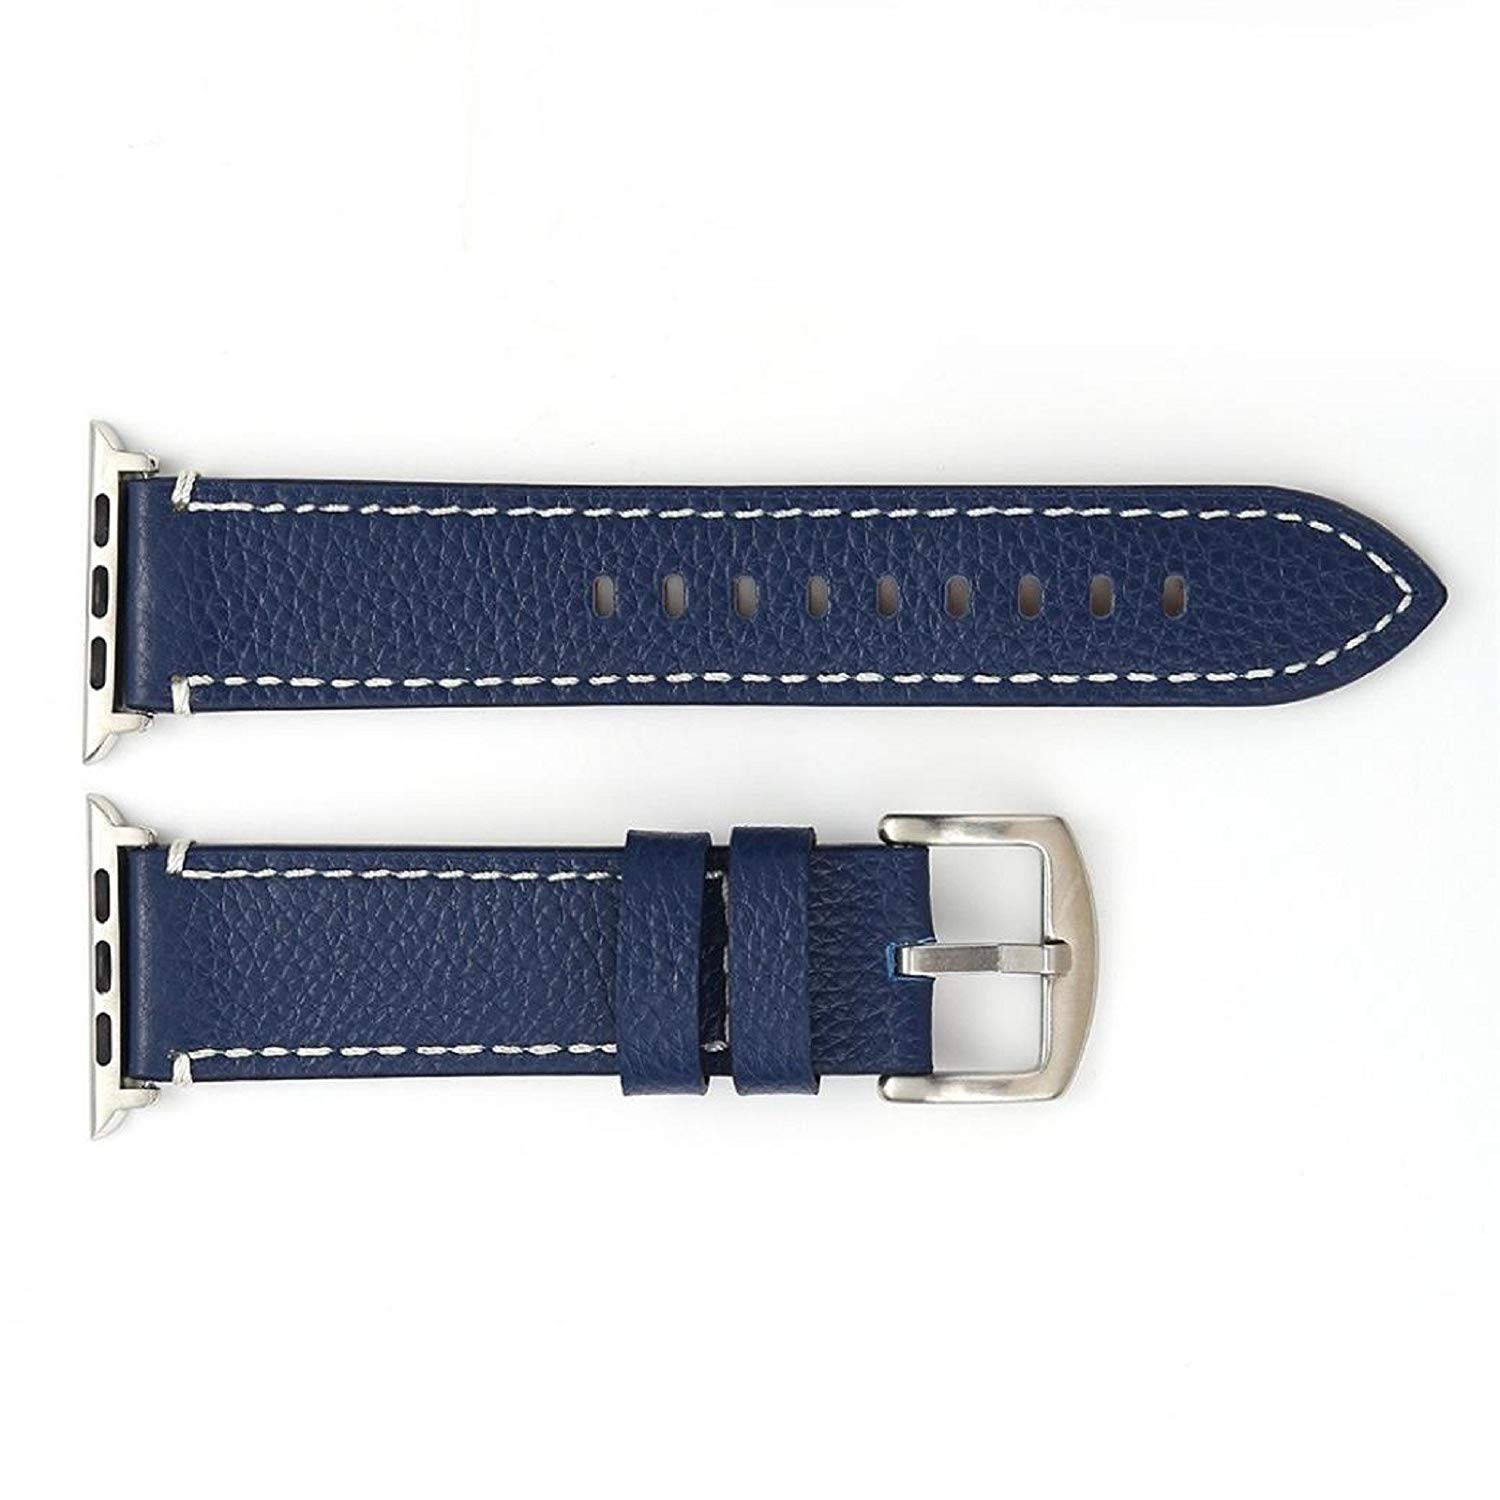 Owill Litchi Pattern Durable Leather Strap Replacement Band Bracelet Watchband For Apple Watch 1/2 38MM,Suitable wrist 160-225MM (Navy)